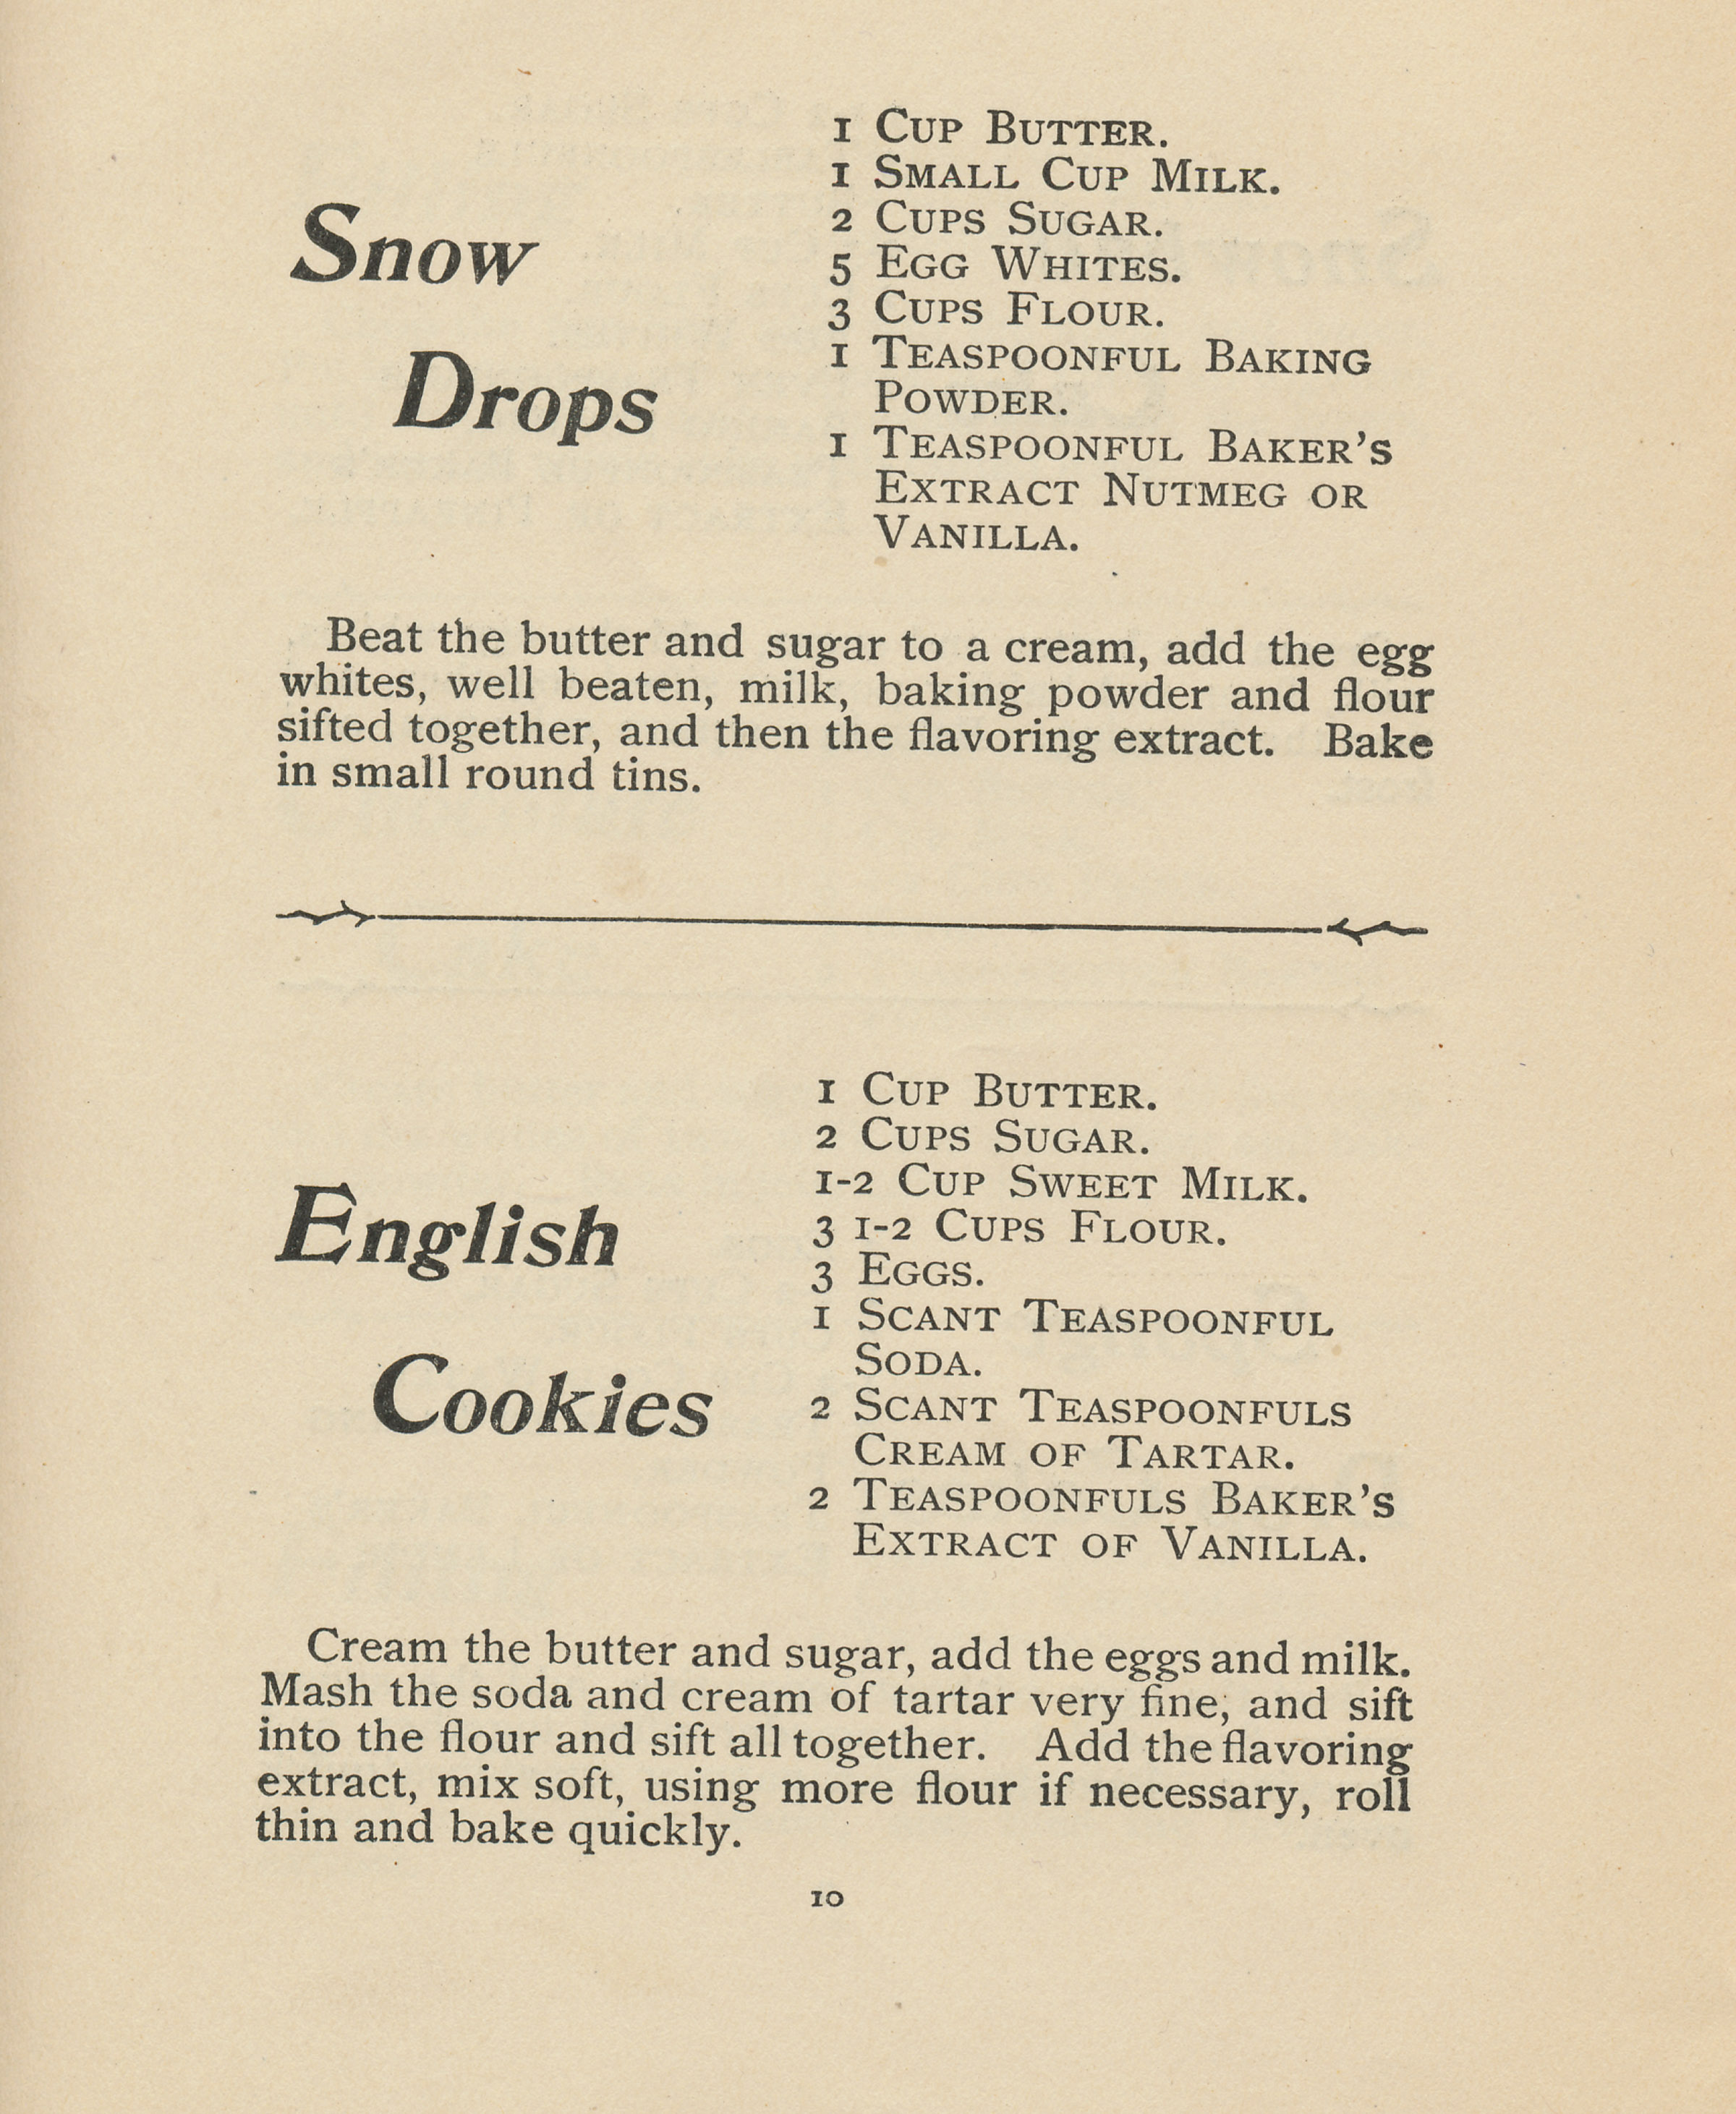 From a pamphlet produced by the Baker Extract Company (year unknown, 19?)